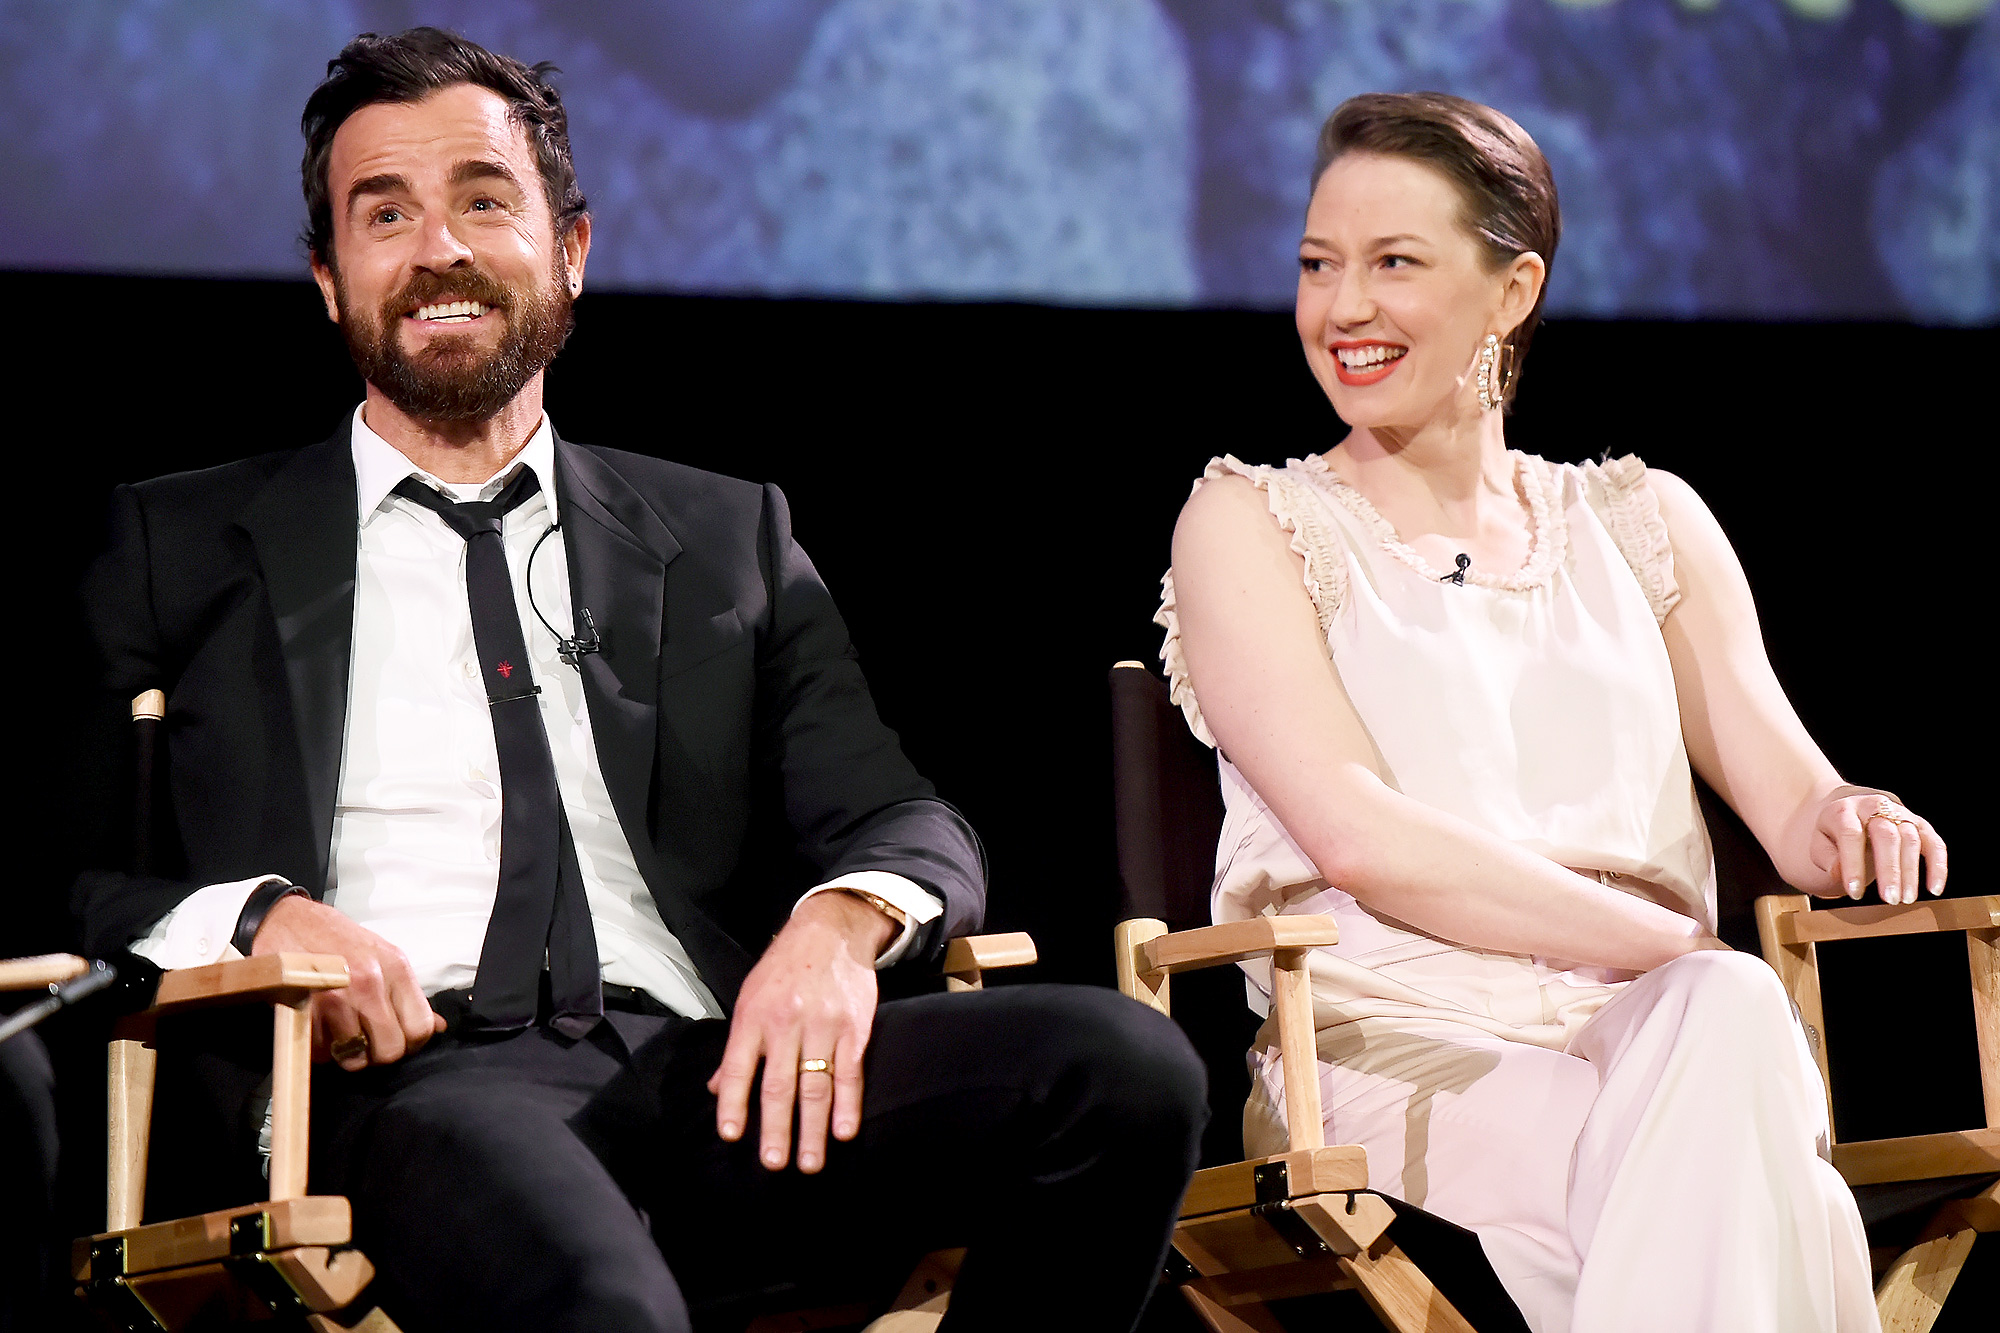 'The Leftovers' TV show FYC Series Finale Screening, Panel, Los Angeles, USA - 04 June 2017